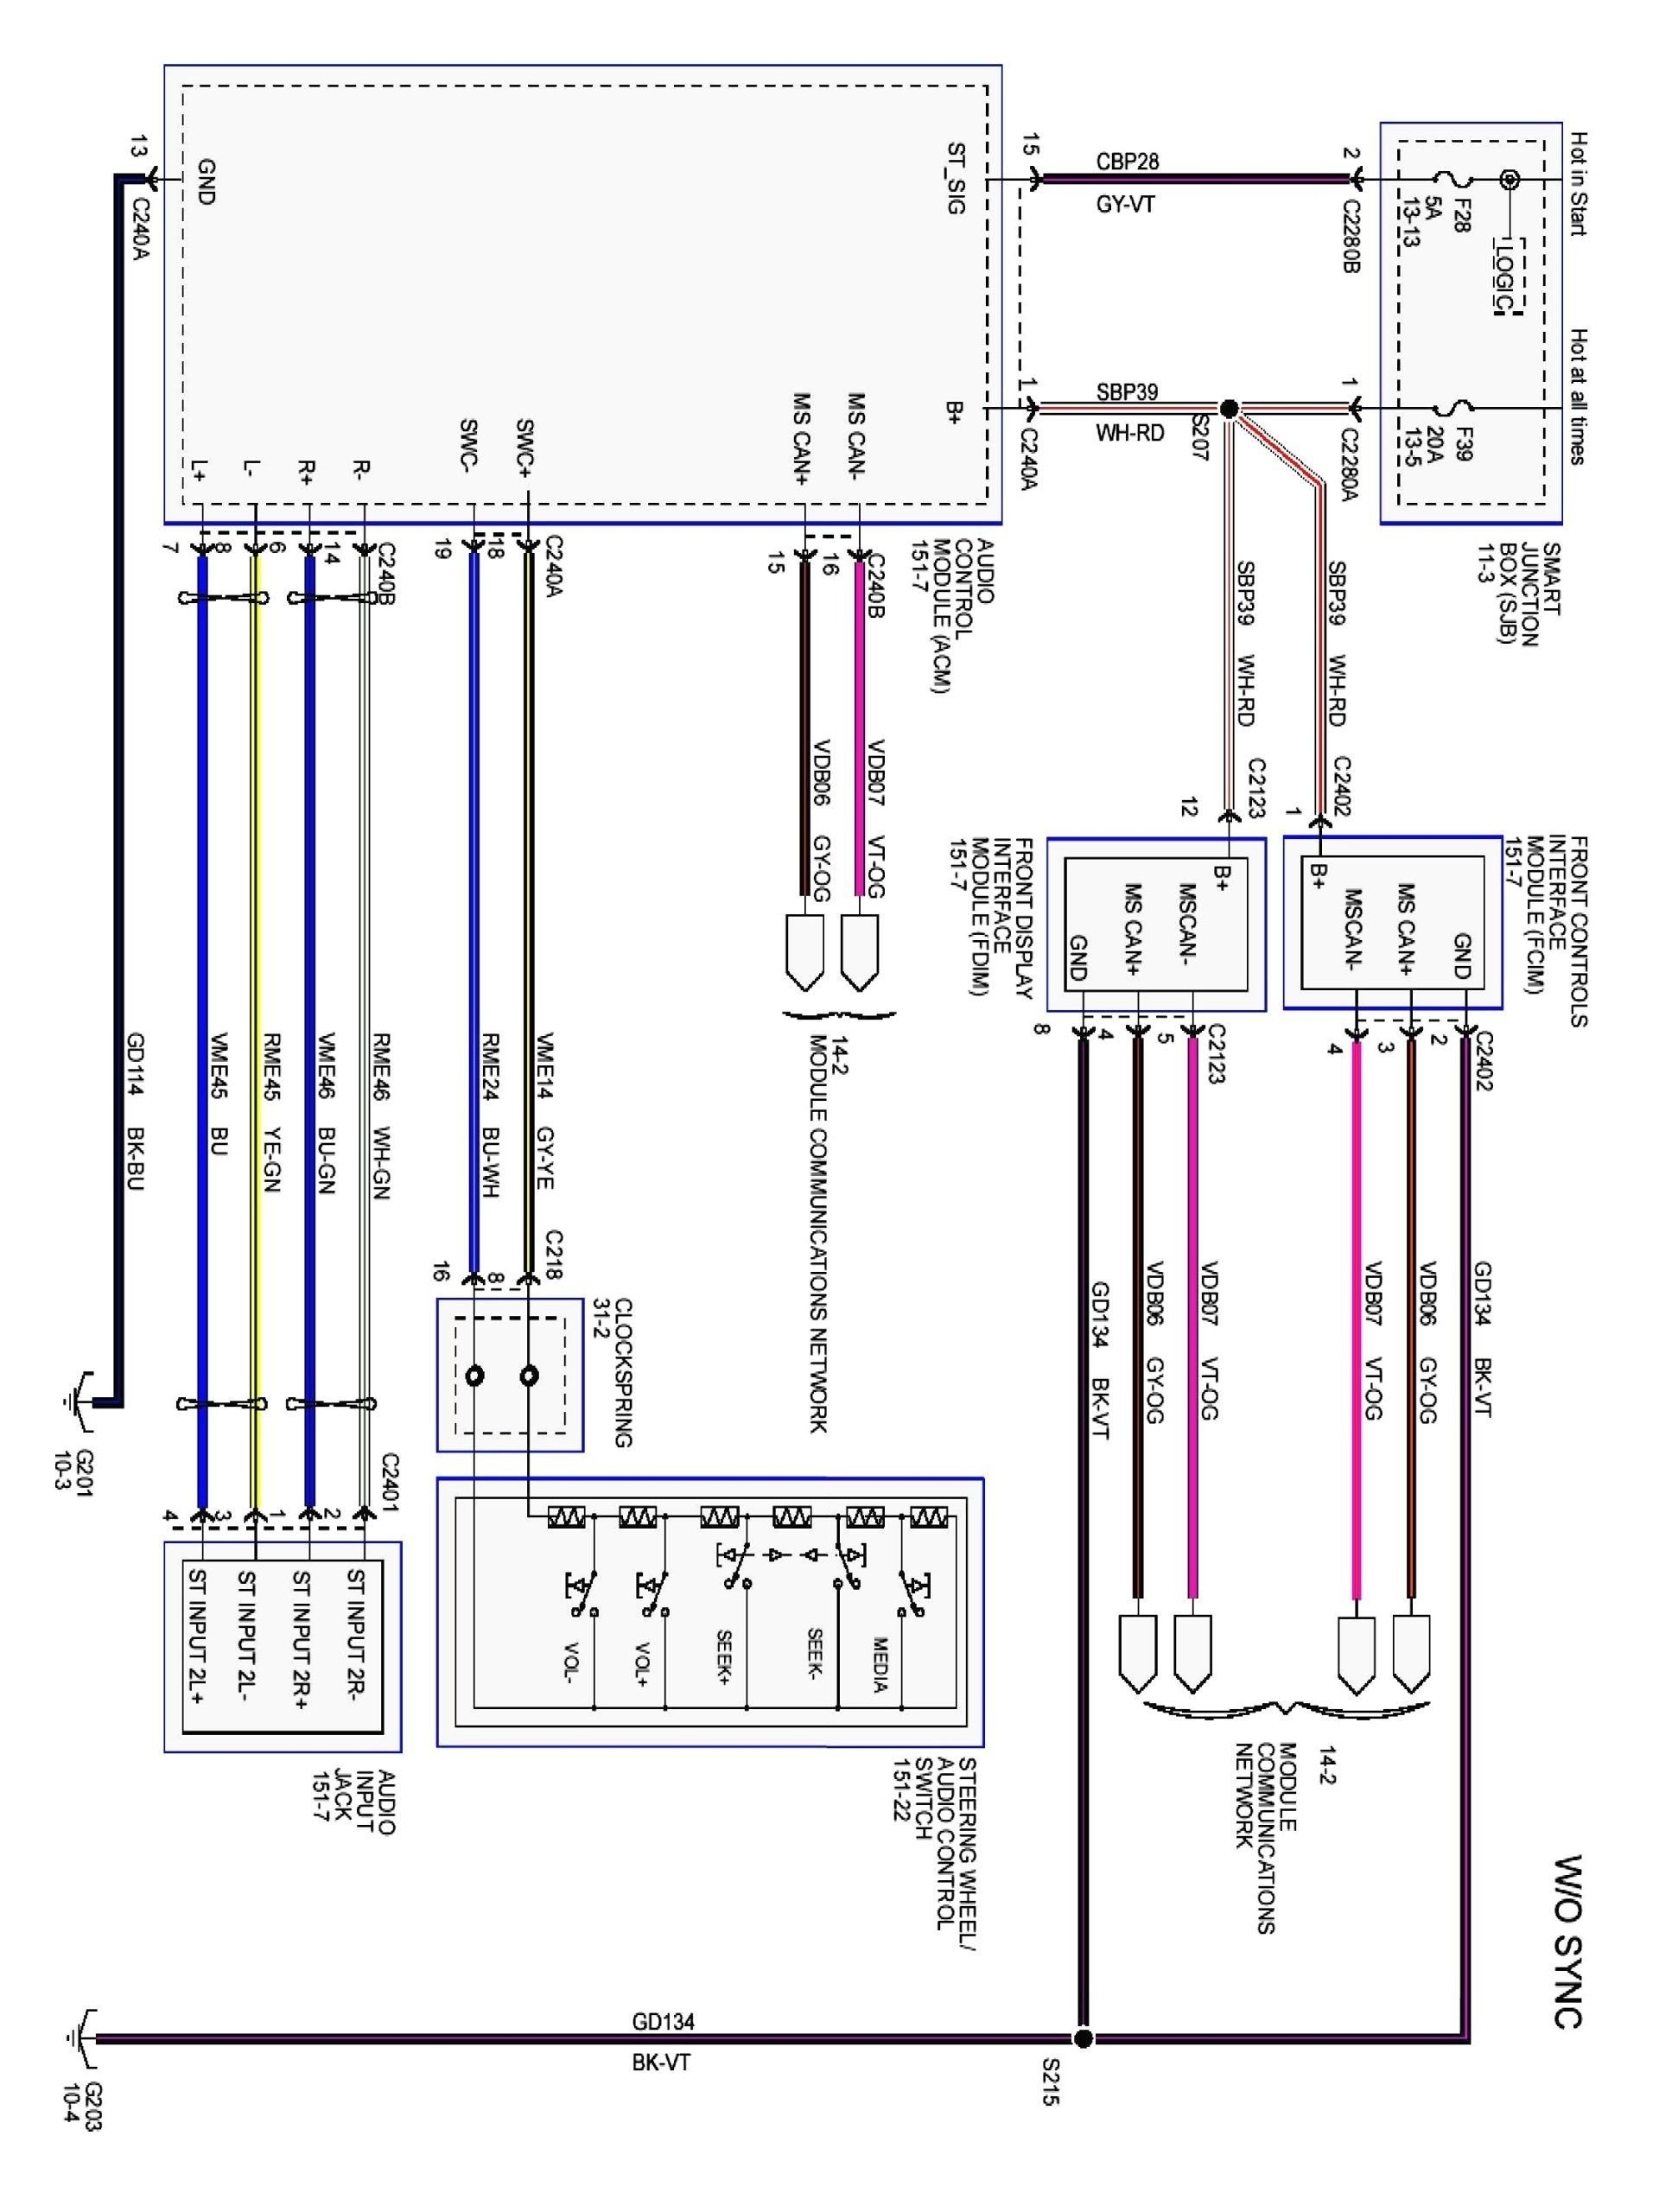 Wiring Diagram for Audi A4 towbar #diagram #diagramtemplate #diagramsample  | Alarmas para autos, Jetta a4, Auto volkswagen | Audi Towbar Wiring Diagram |  | Pinterest